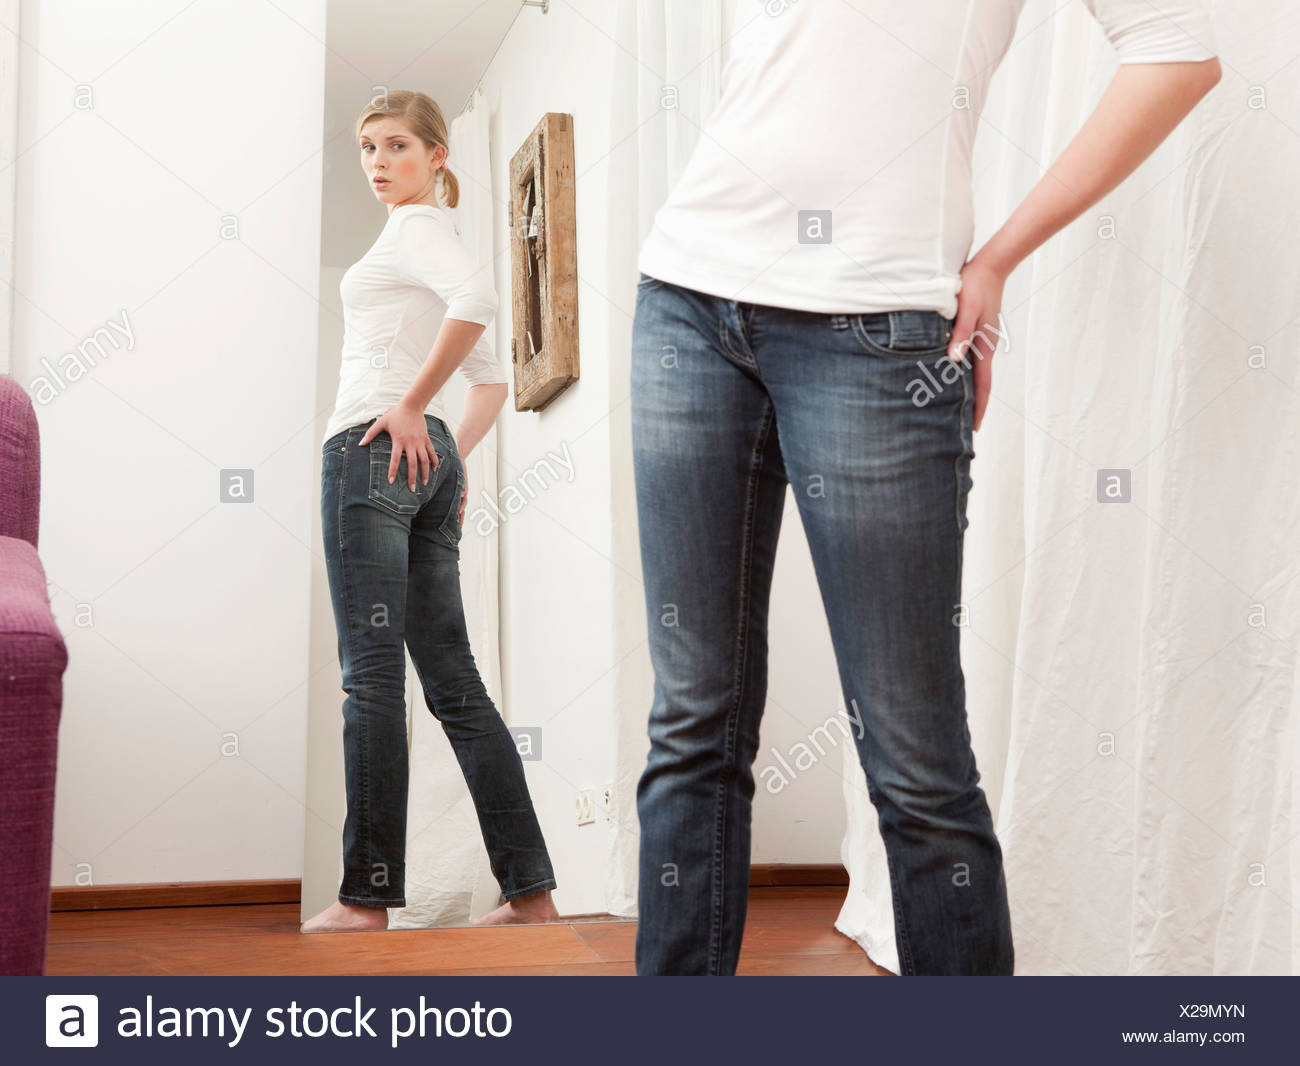 Woman checking her body in the mirror. - Stock Image